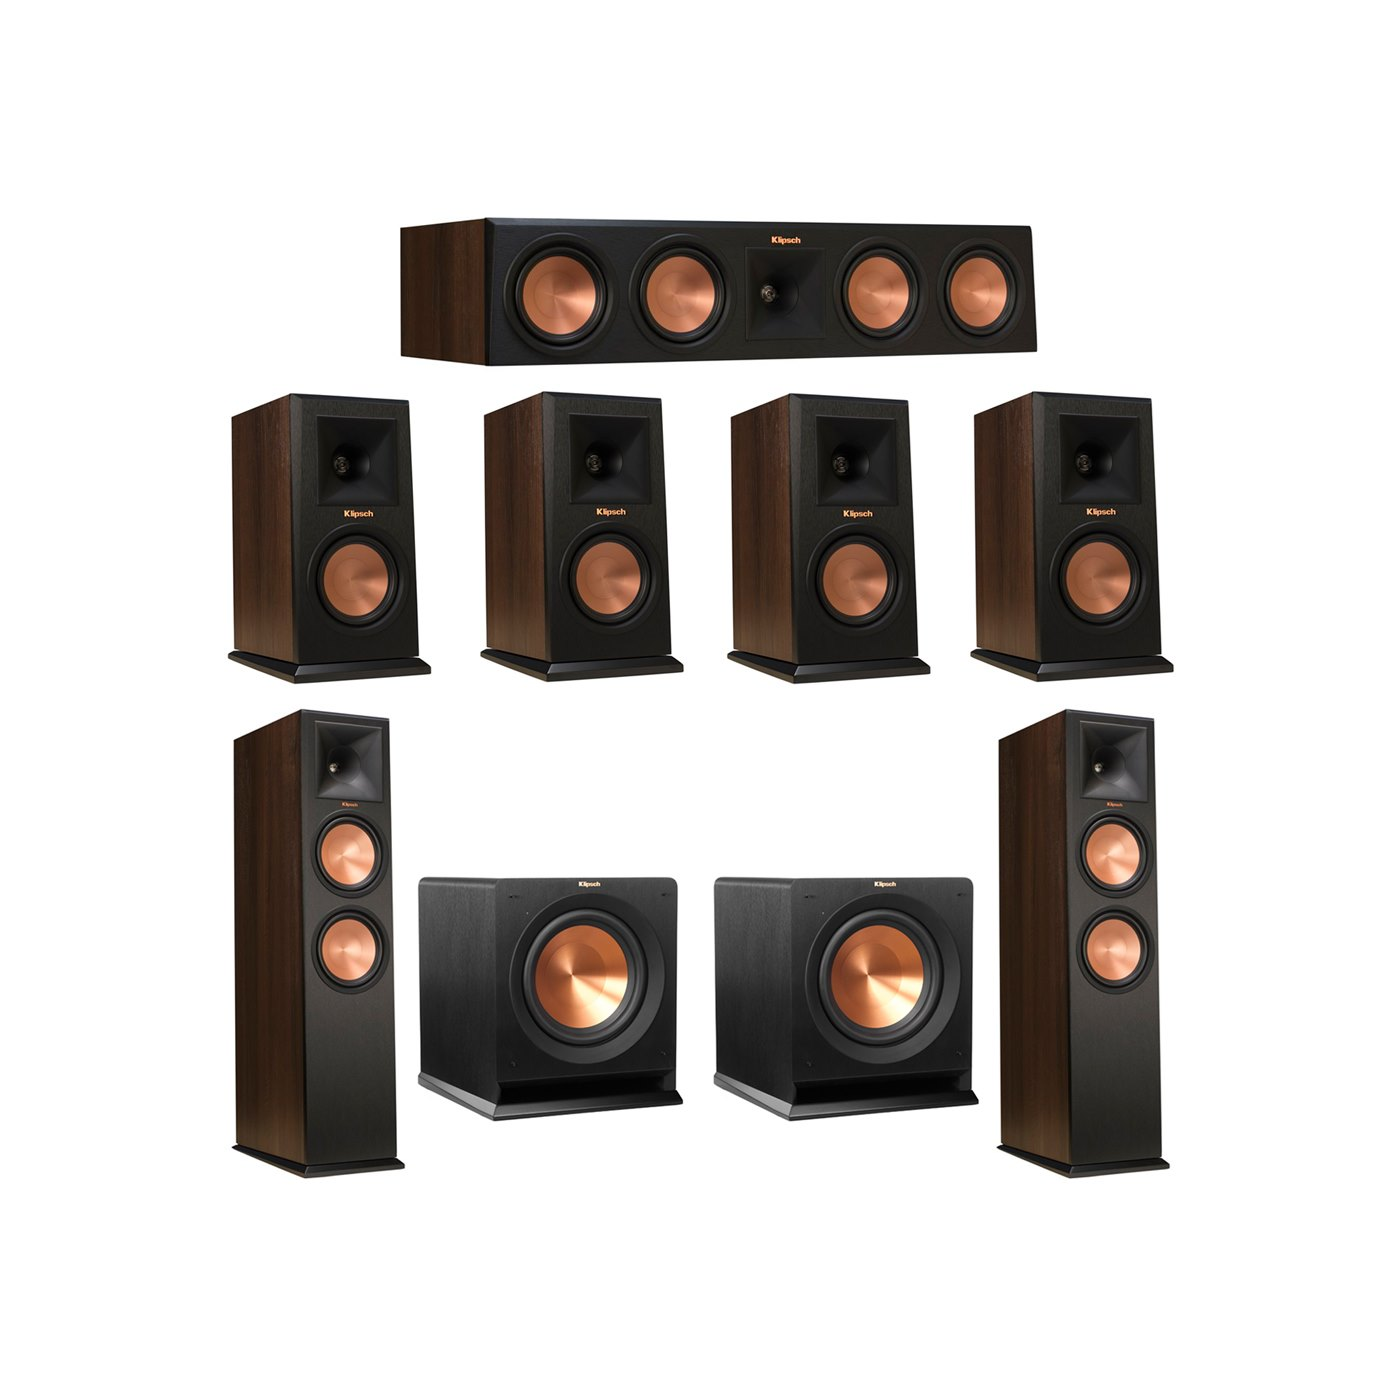 Klipsch 7.2 Walnut System with 2 RP-280F Tower Speakers, 1 RP-450C Center Speaker, 4 Klipsch RP-150M Bookshelf Speakers, 2 Klipsch R-110SW Subwoofer